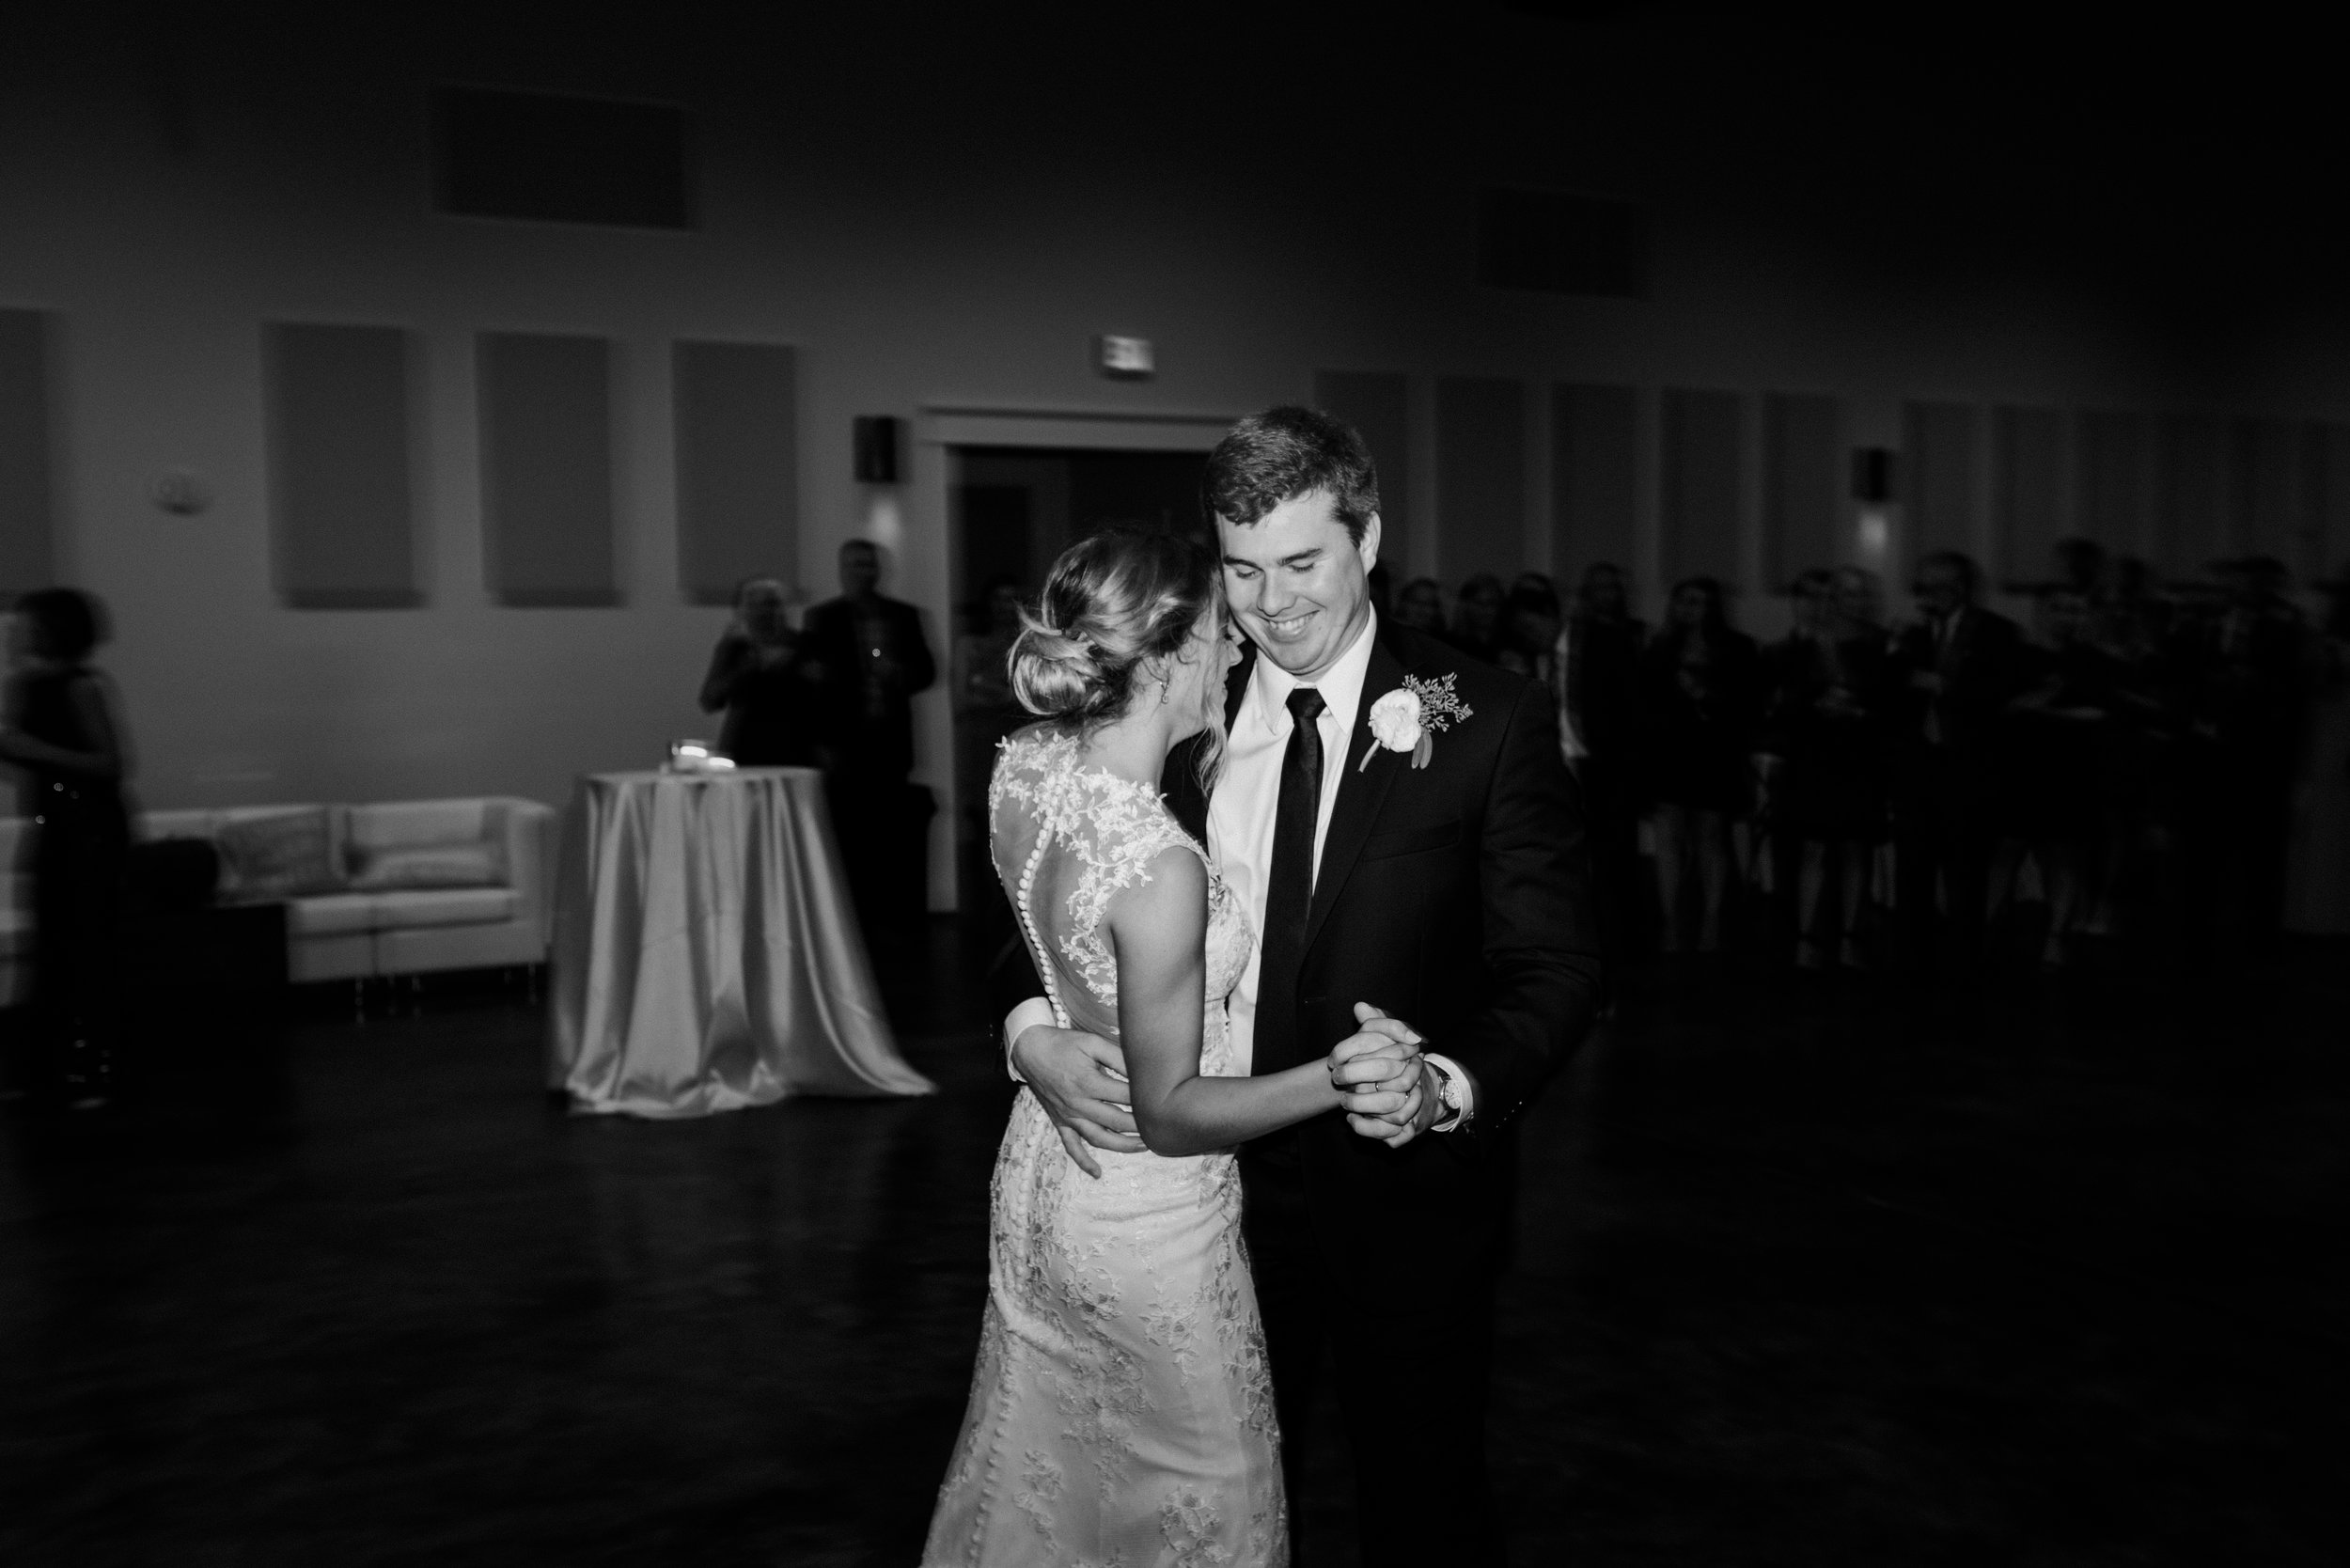 cailin+hails_destination_wedding_fairhope_daphne_mobile_alabama_madisonrylee_0129.jpg